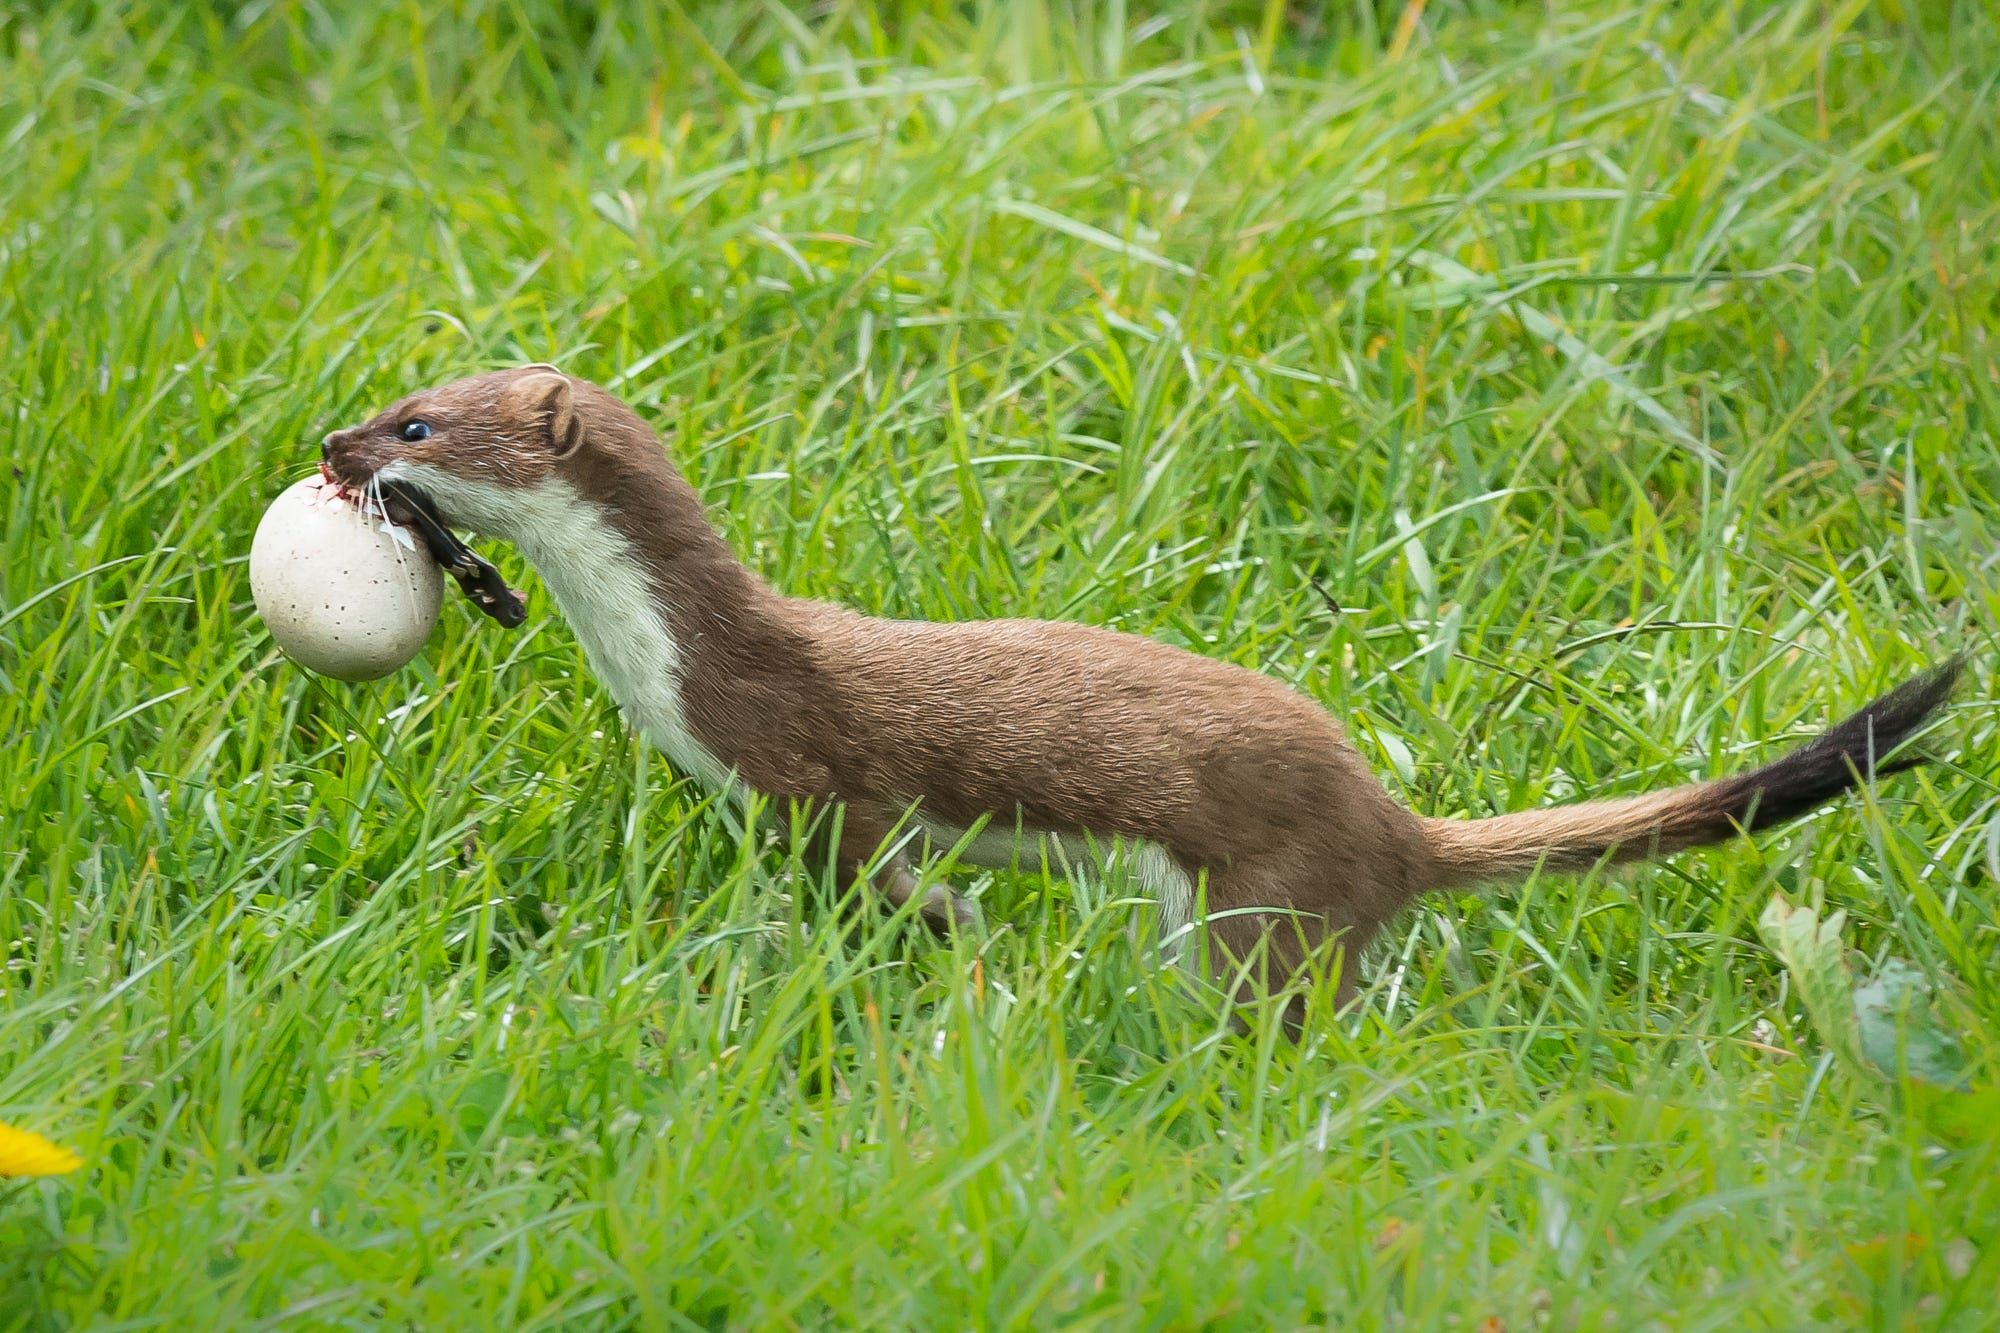 Stoat with egg by Ian Calland on 500px